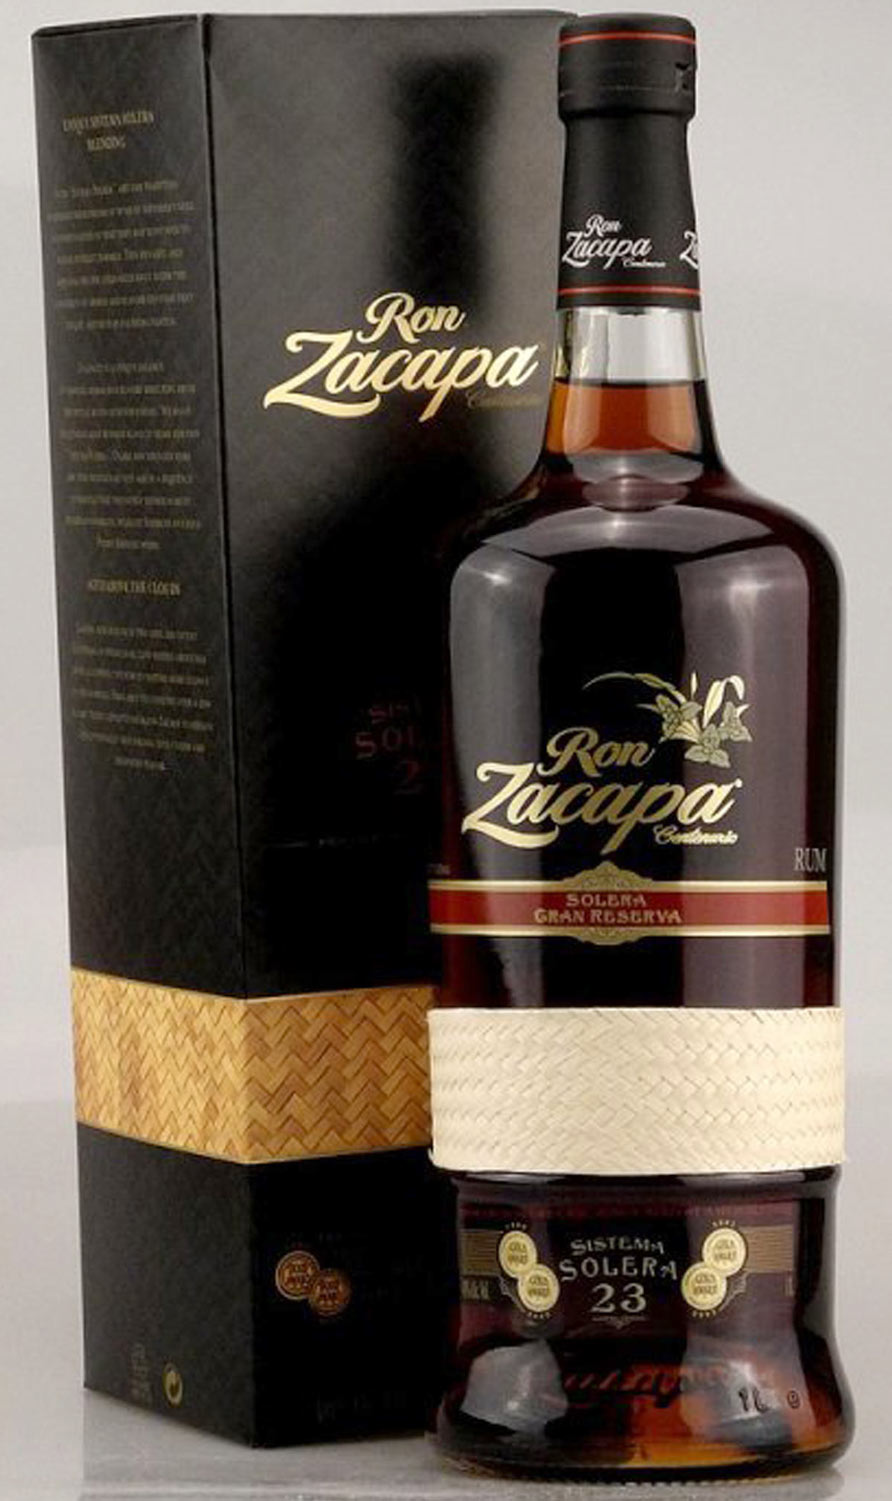 Ron zacapa sistema solera rum for Food bar zacapa